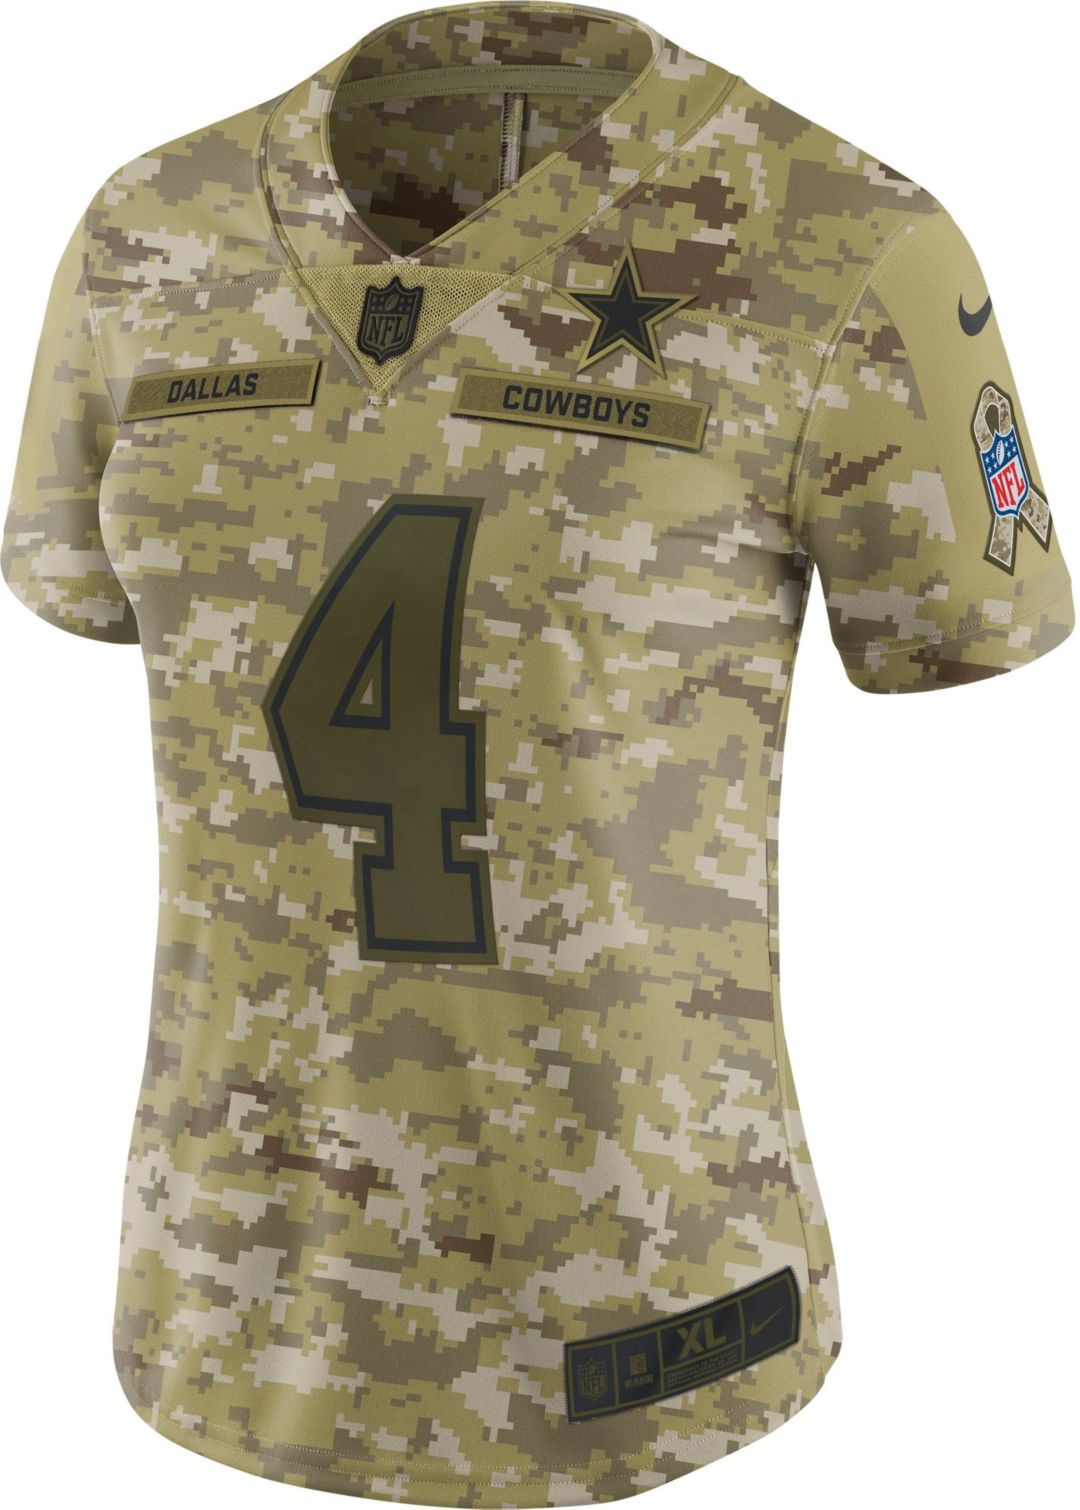 8258e5cd3 Nike Women's Salute to Service Dallas Cowboys Dak Prescott #4 Limited  Camouflage Jersey 2